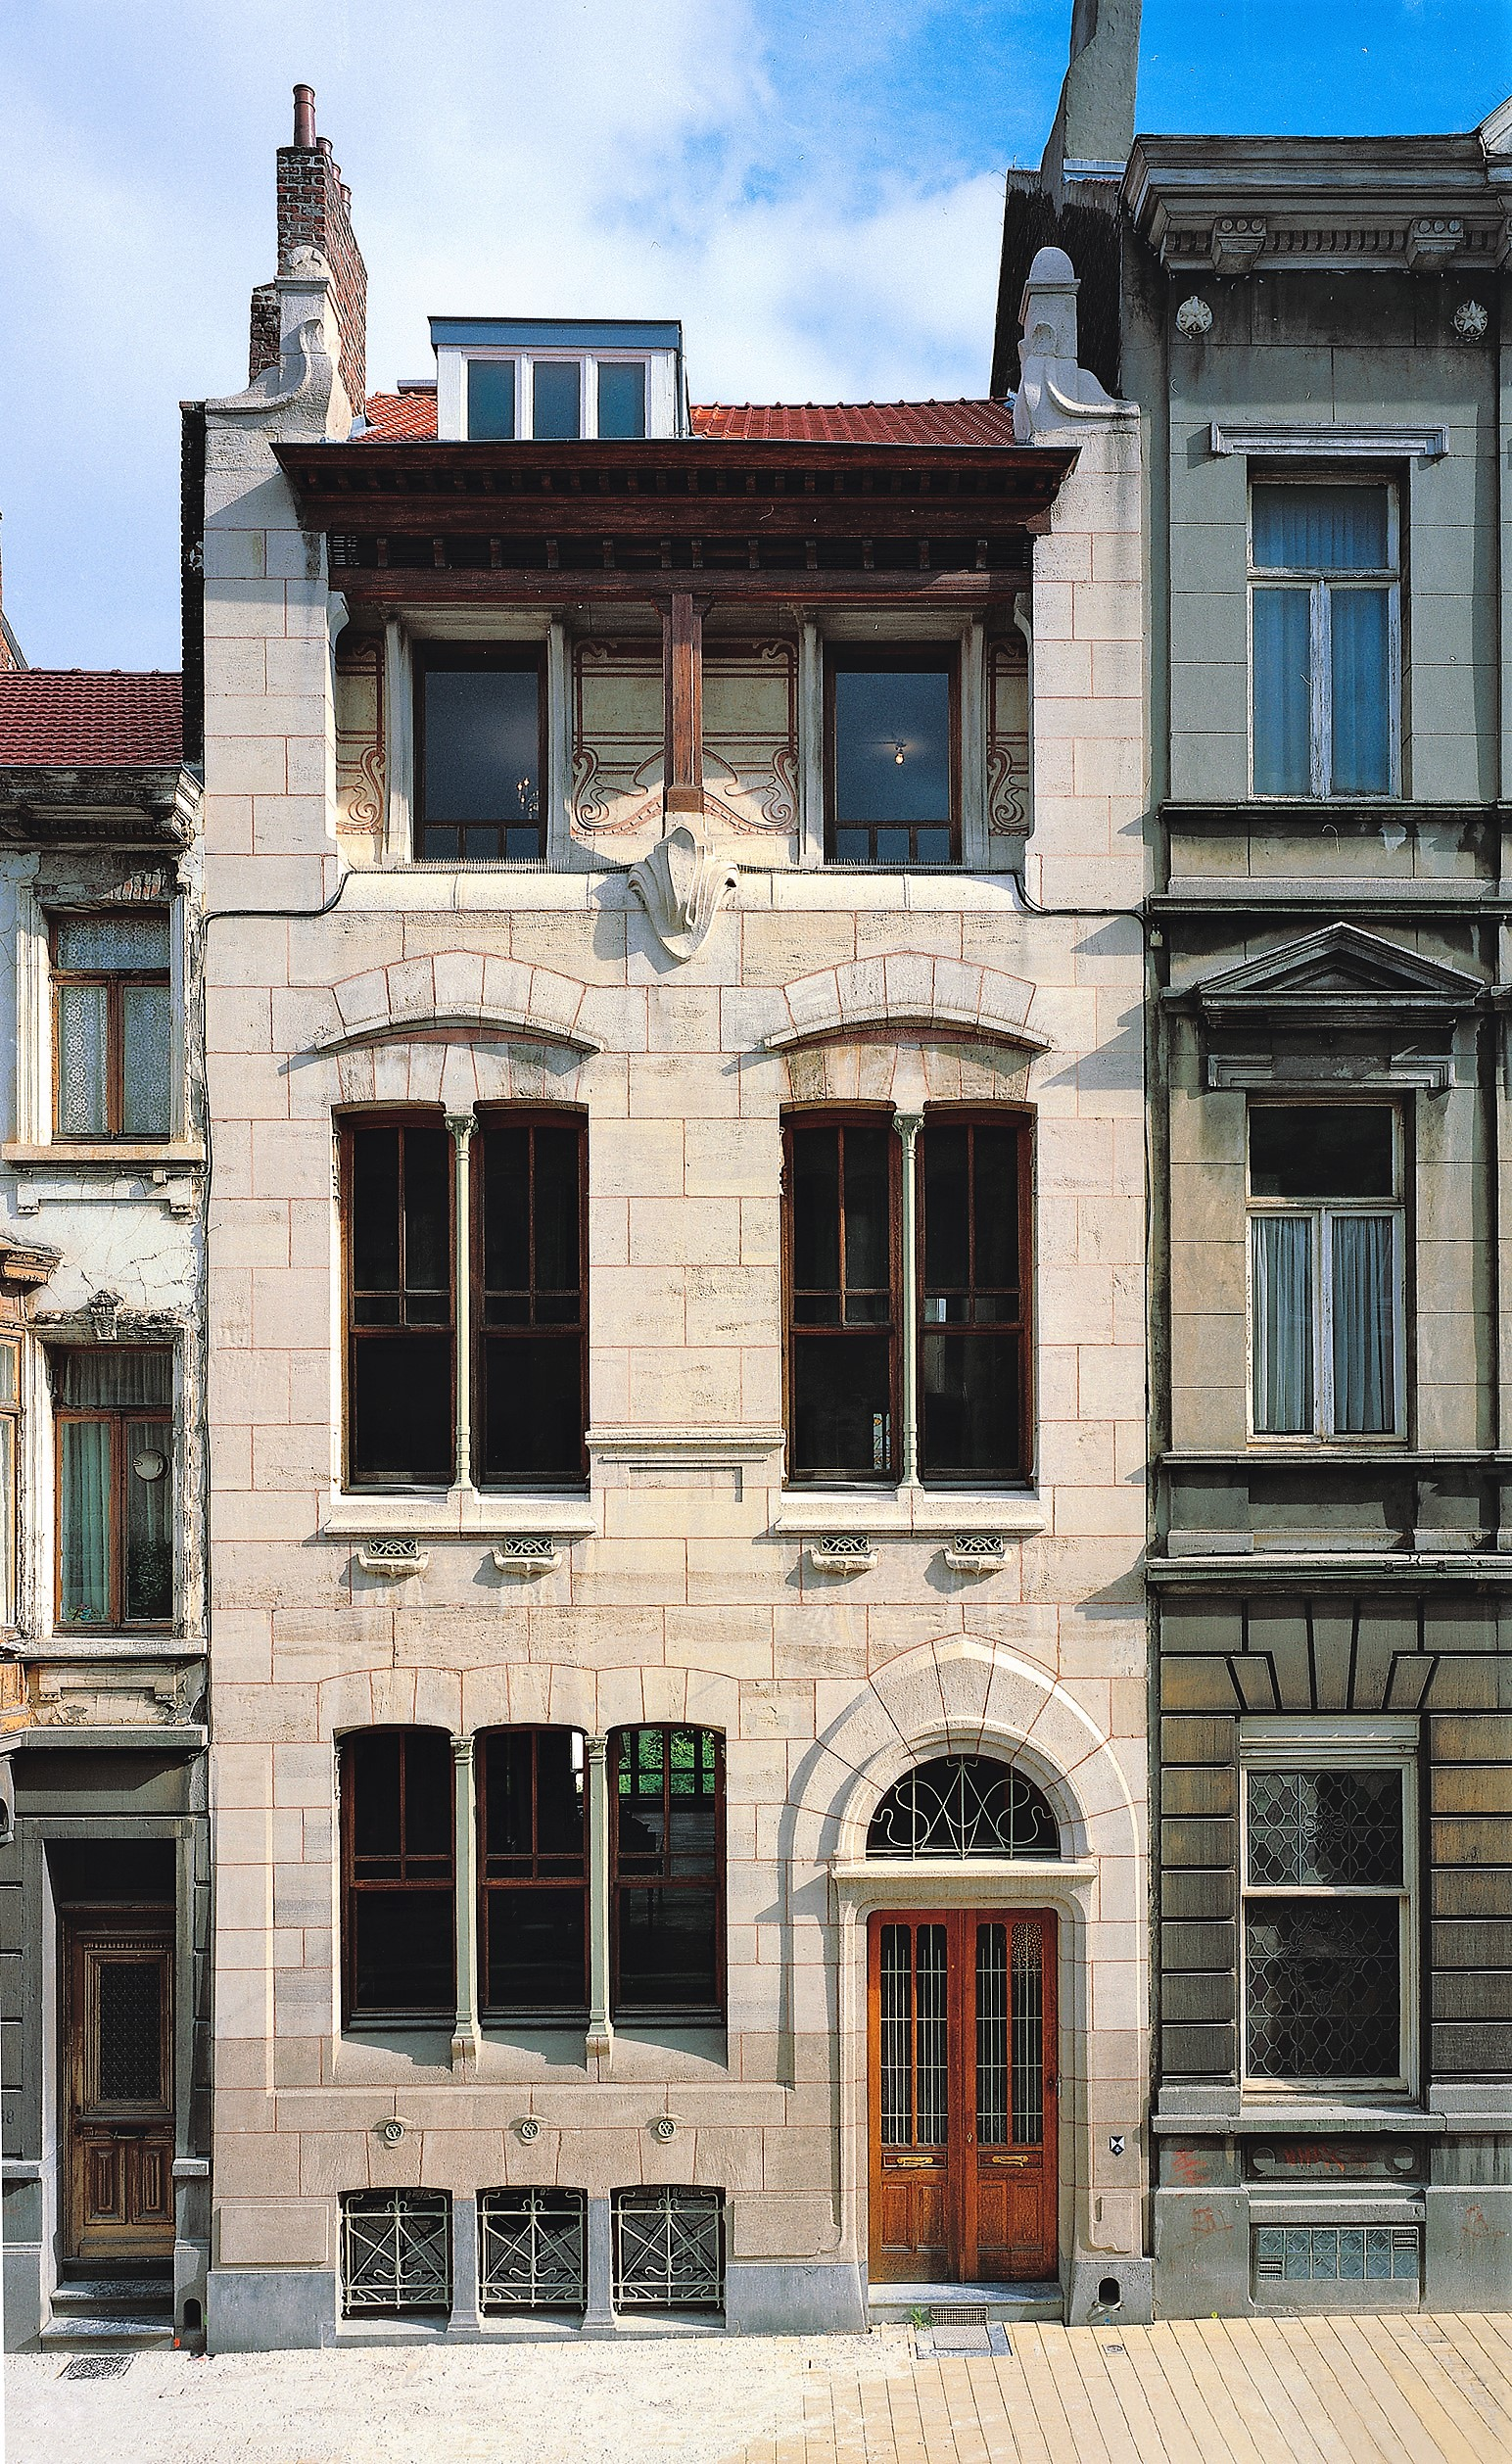 Autrique House can be found in Brussels, Belgium. This was the first house designed by Victor Horta in 1893.